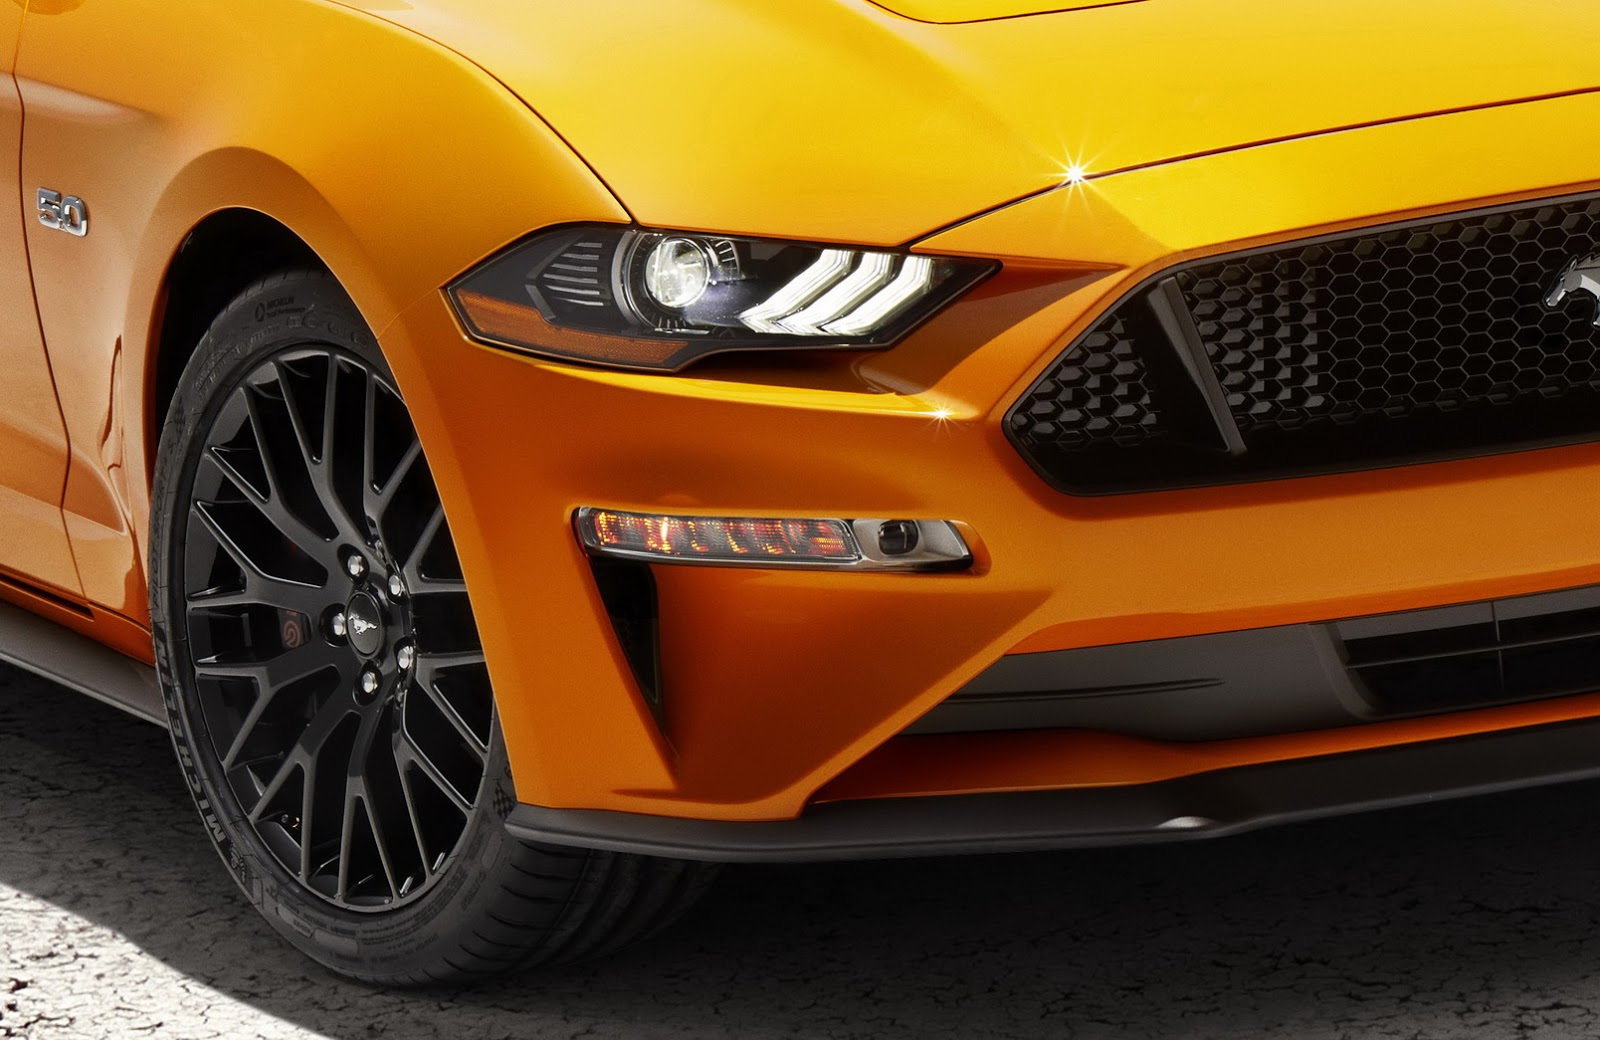 04 Mustang Gt >> 2018 Ford Mustang revealed with new face and more power - photos | CarAdvice